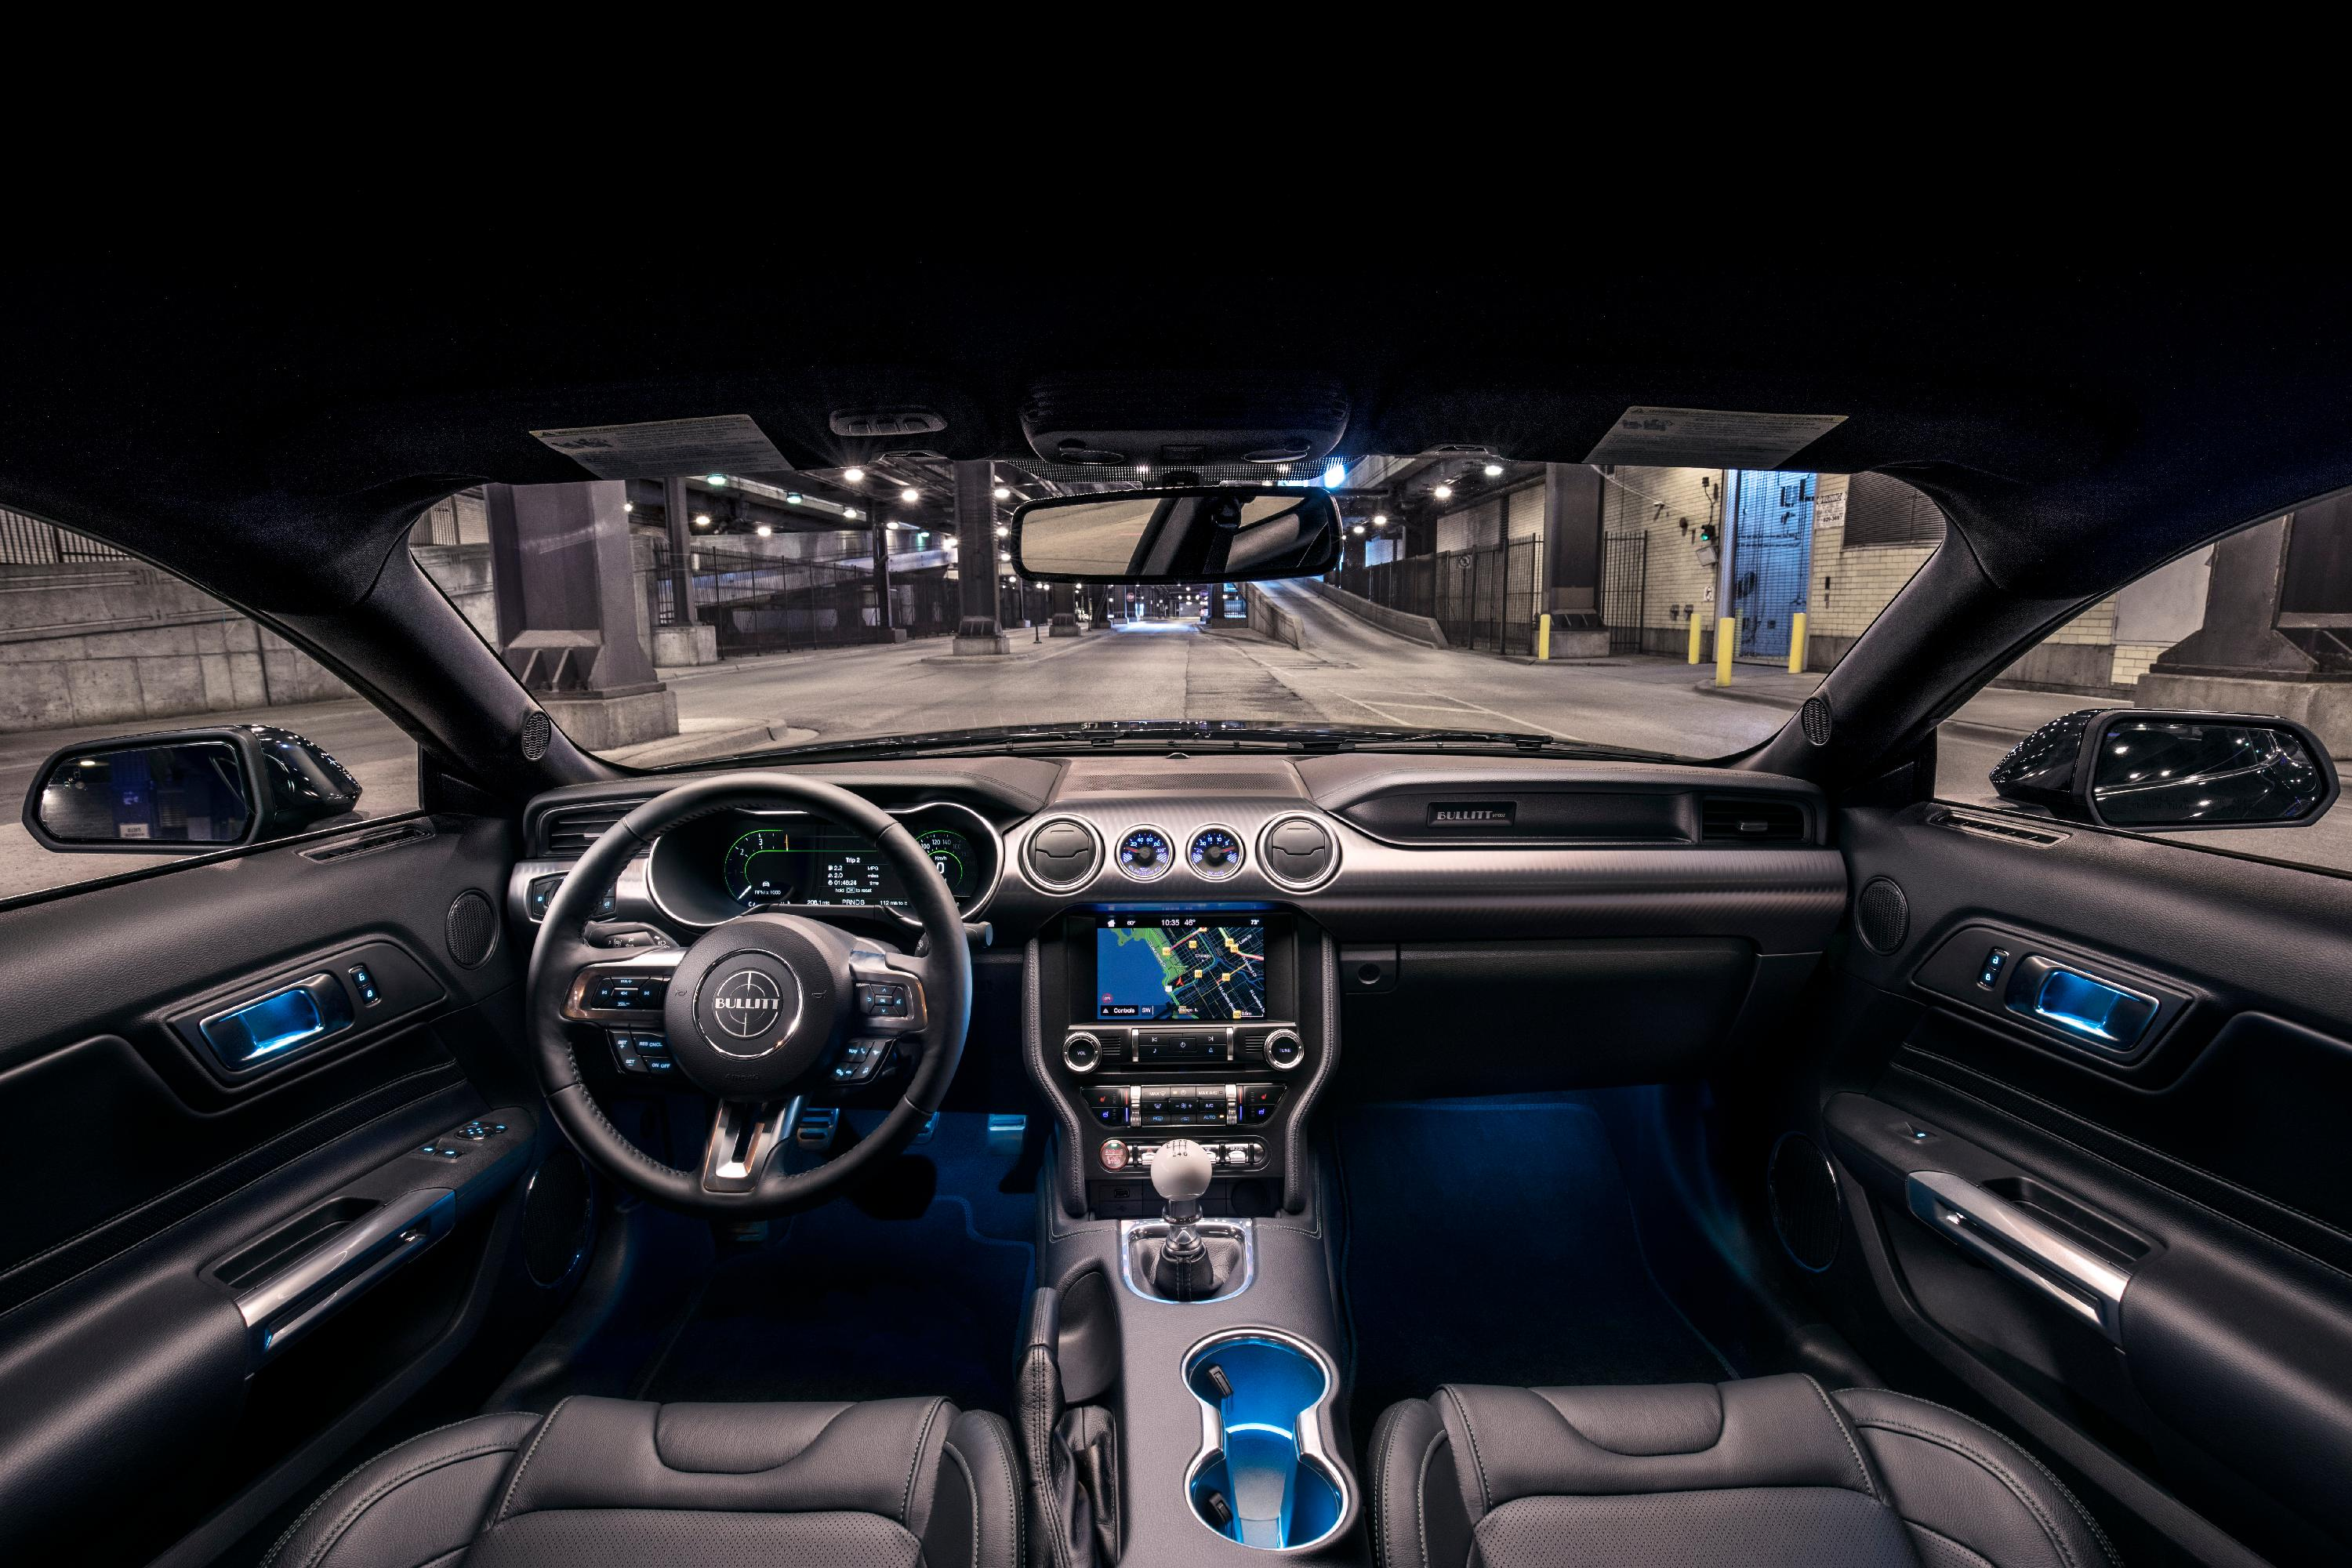 2019 Ford Mustang Bullitt (Interior). Source: Ford